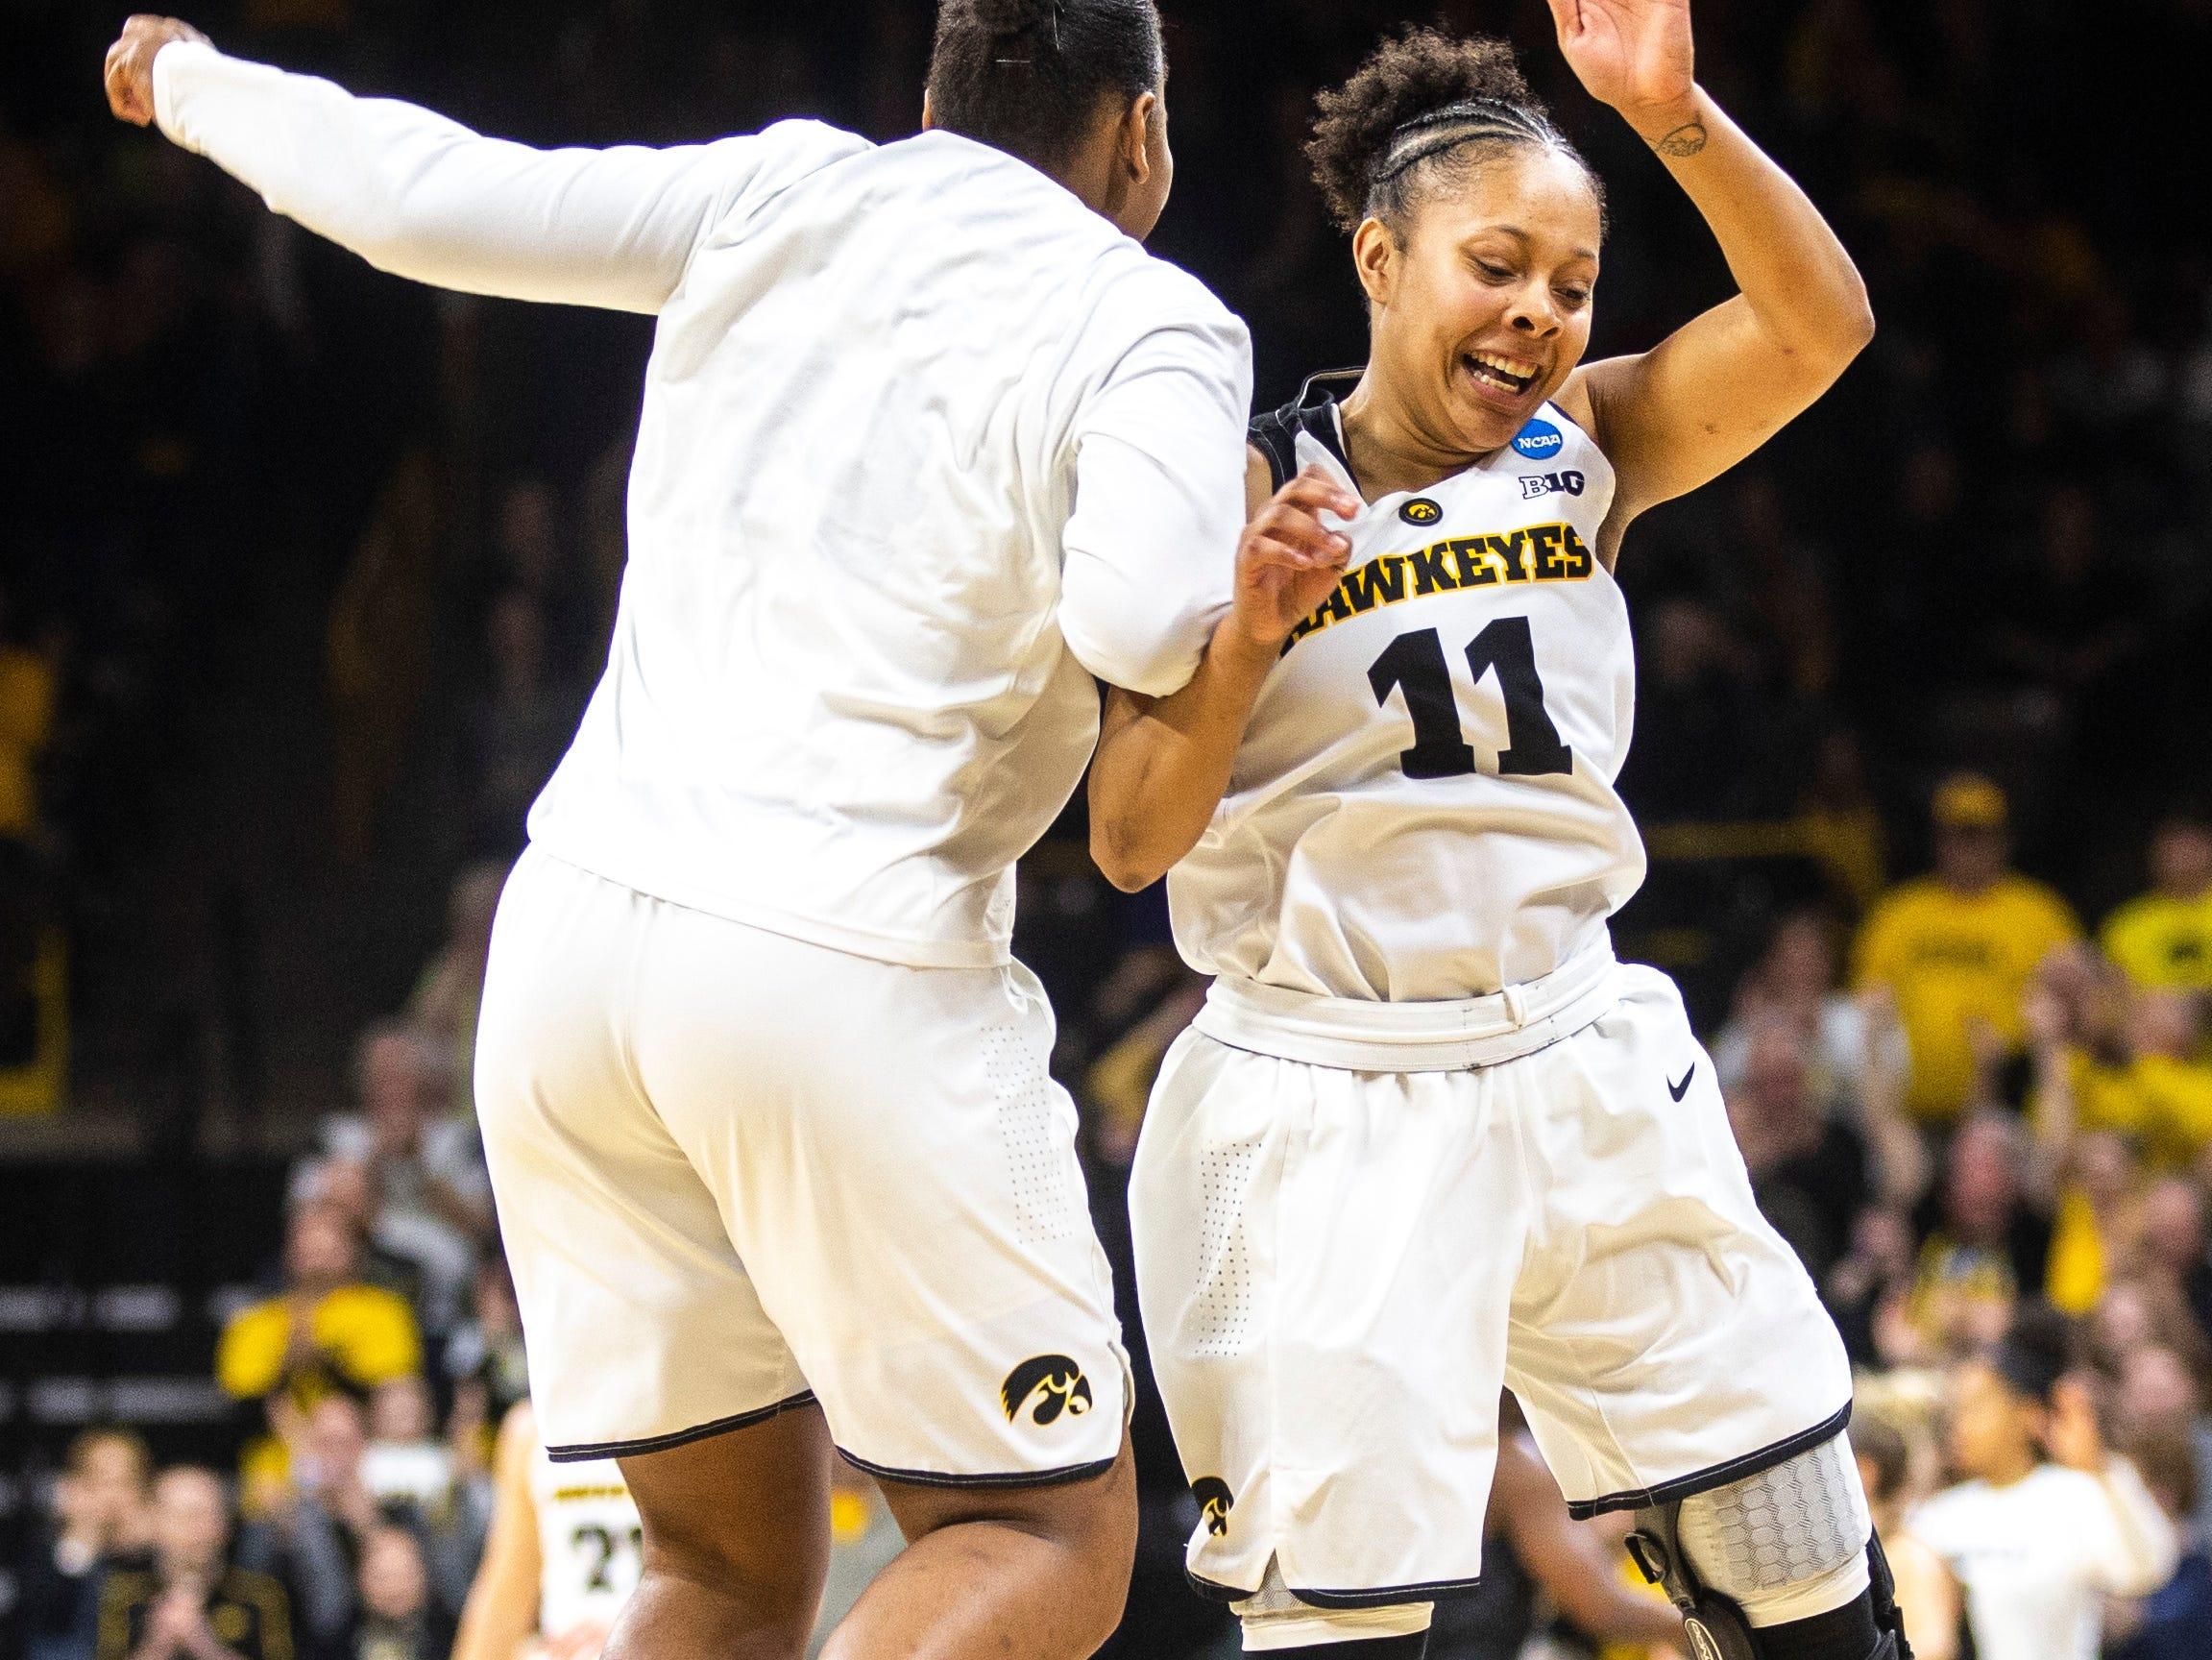 Iowa guard Tania Davis (11) celebrates with teammate Iowa guard Zion Sanders, left, during a NCAA women's basketball tournament second-round game, Sunday, March 24, 2019, at Carver-Hawkeye Arena in Iowa City, Iowa.